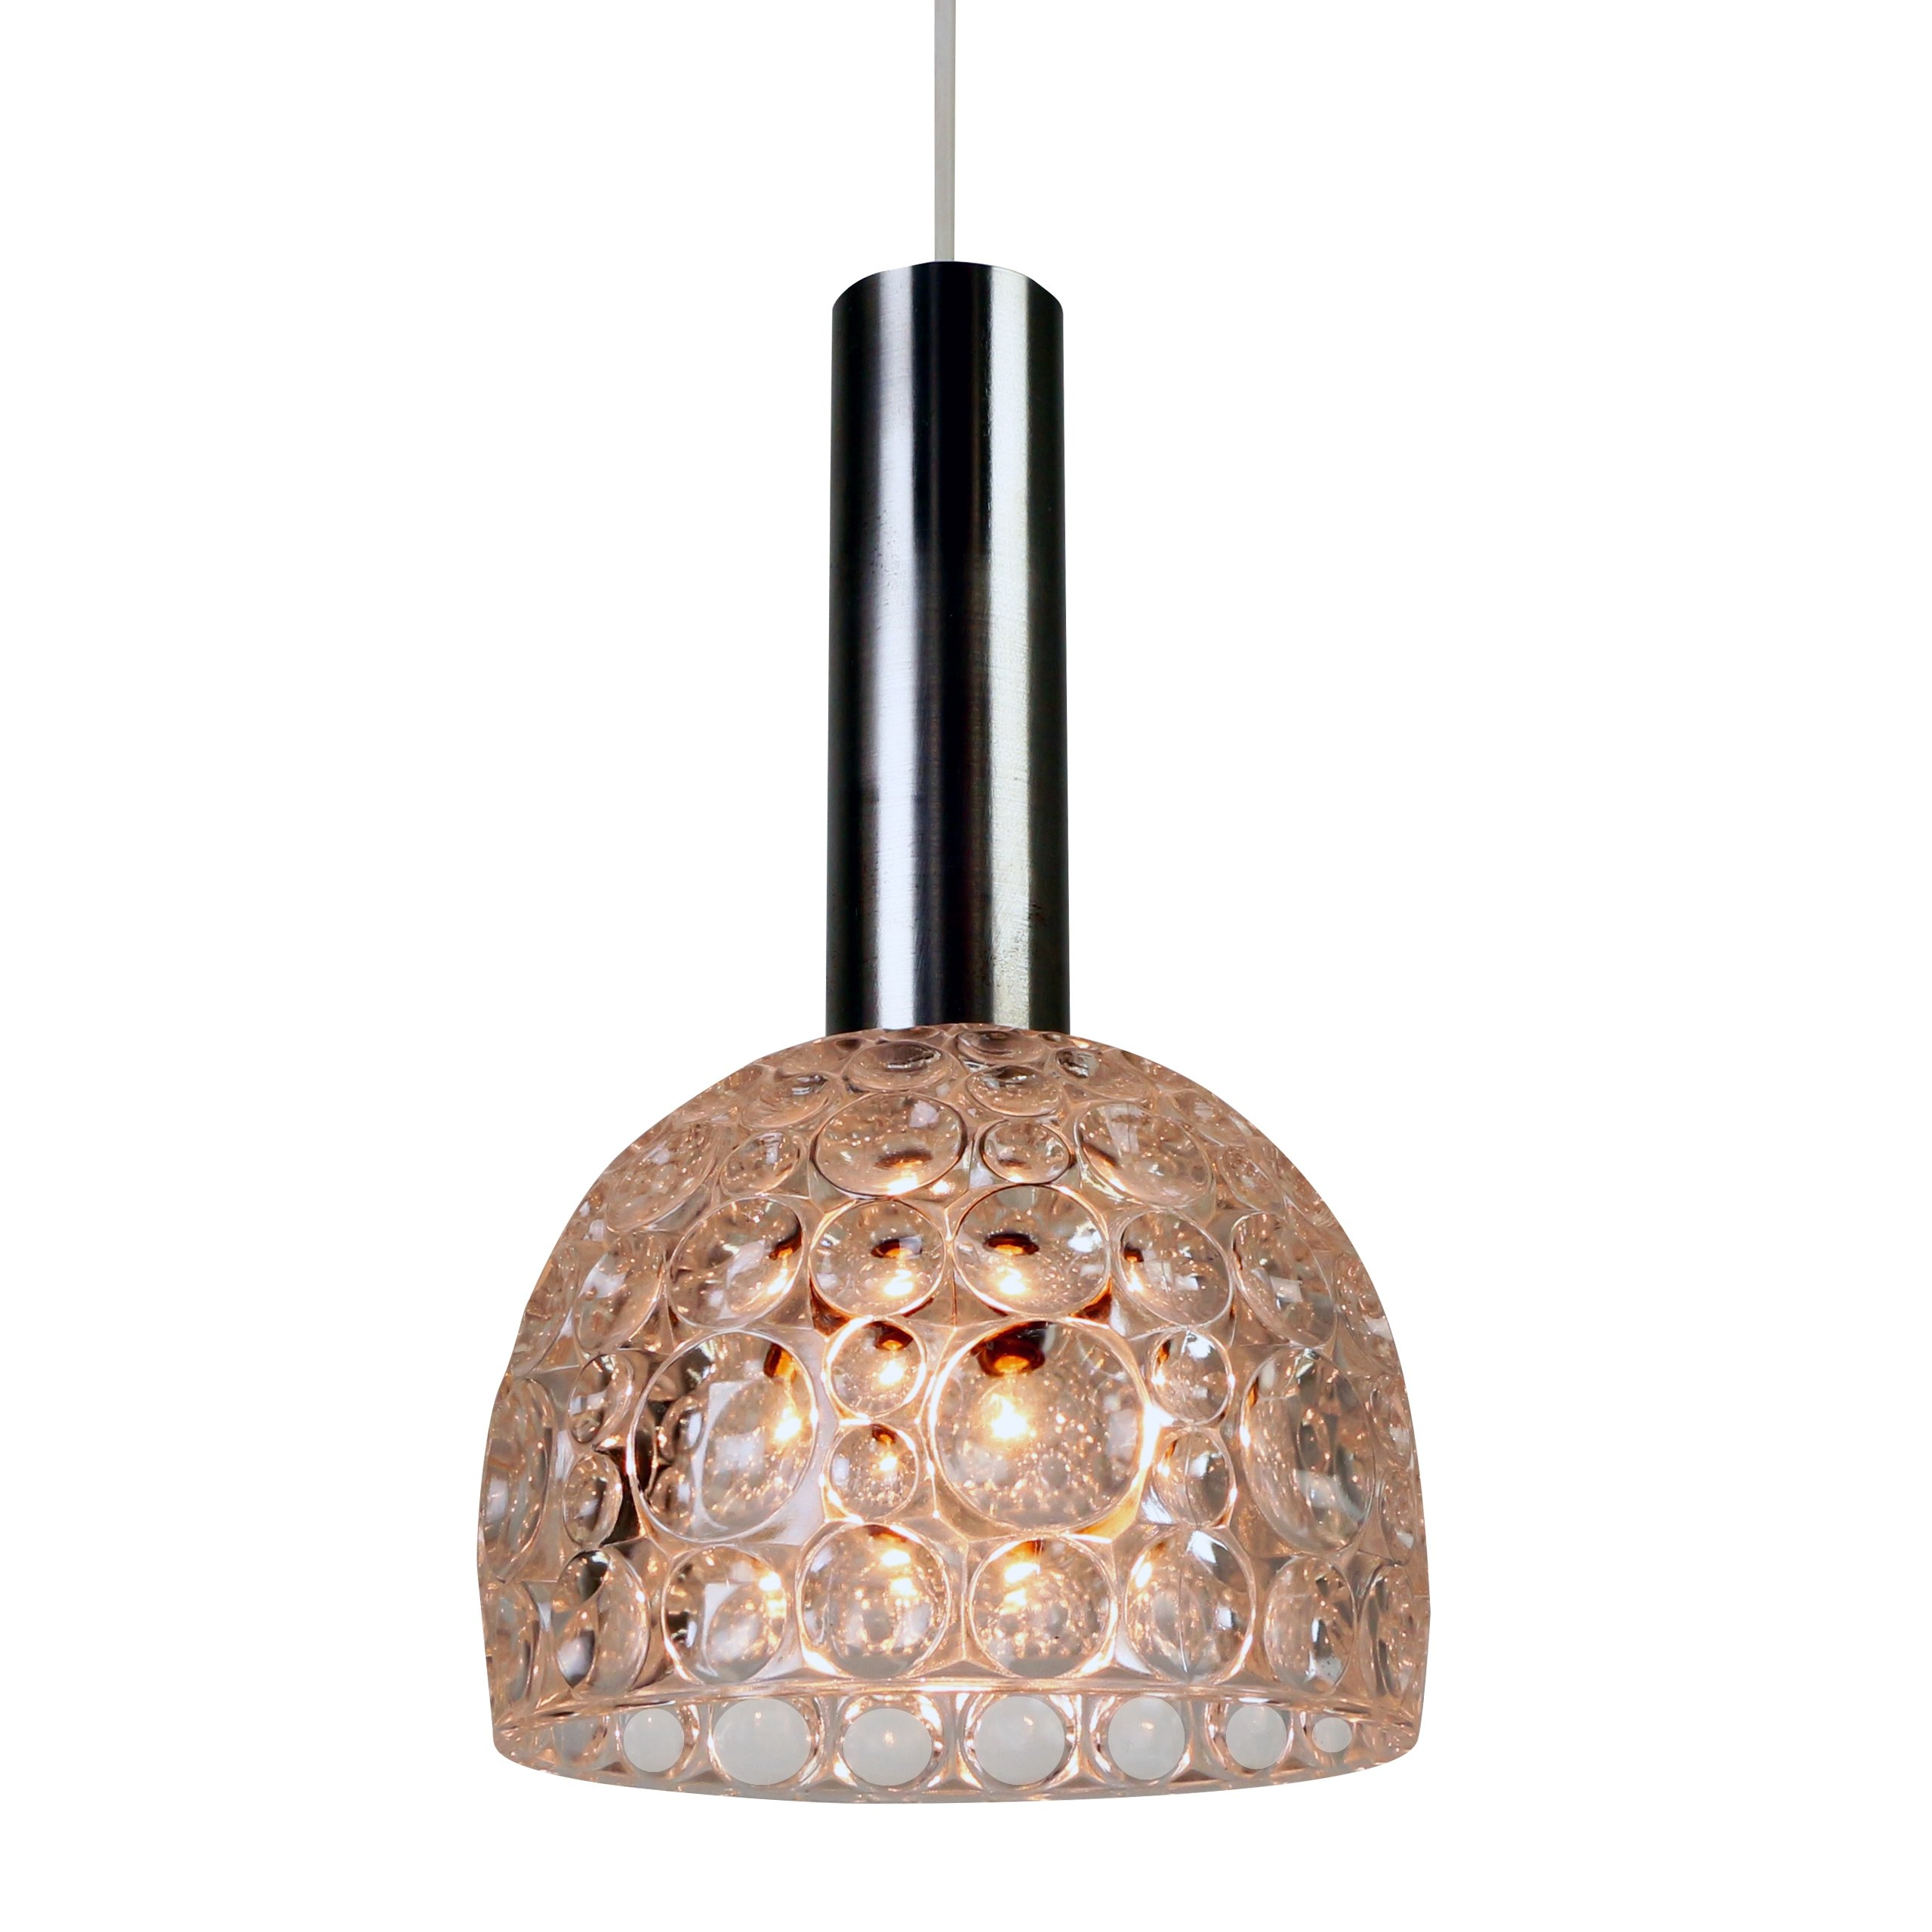 glass murano obj model fbx voltolina chandelier pendant furniture lamp max models mtl canaletto